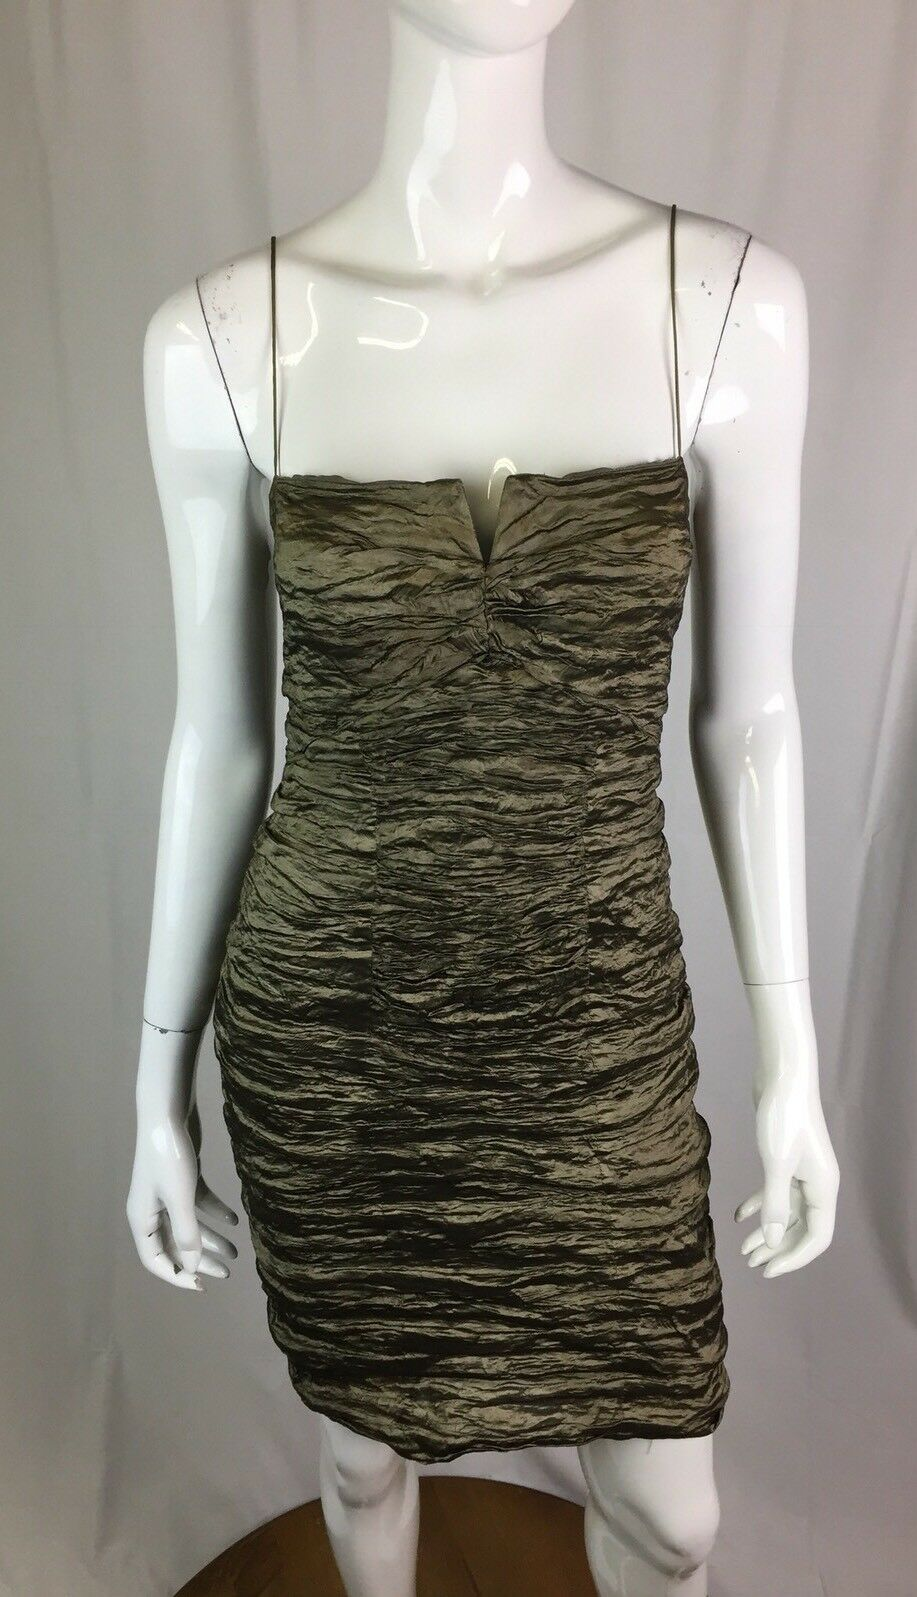 375 Nicole Miller Womens 12 Metallic Bronze Green Ruched Stretchy Bodycon Dress